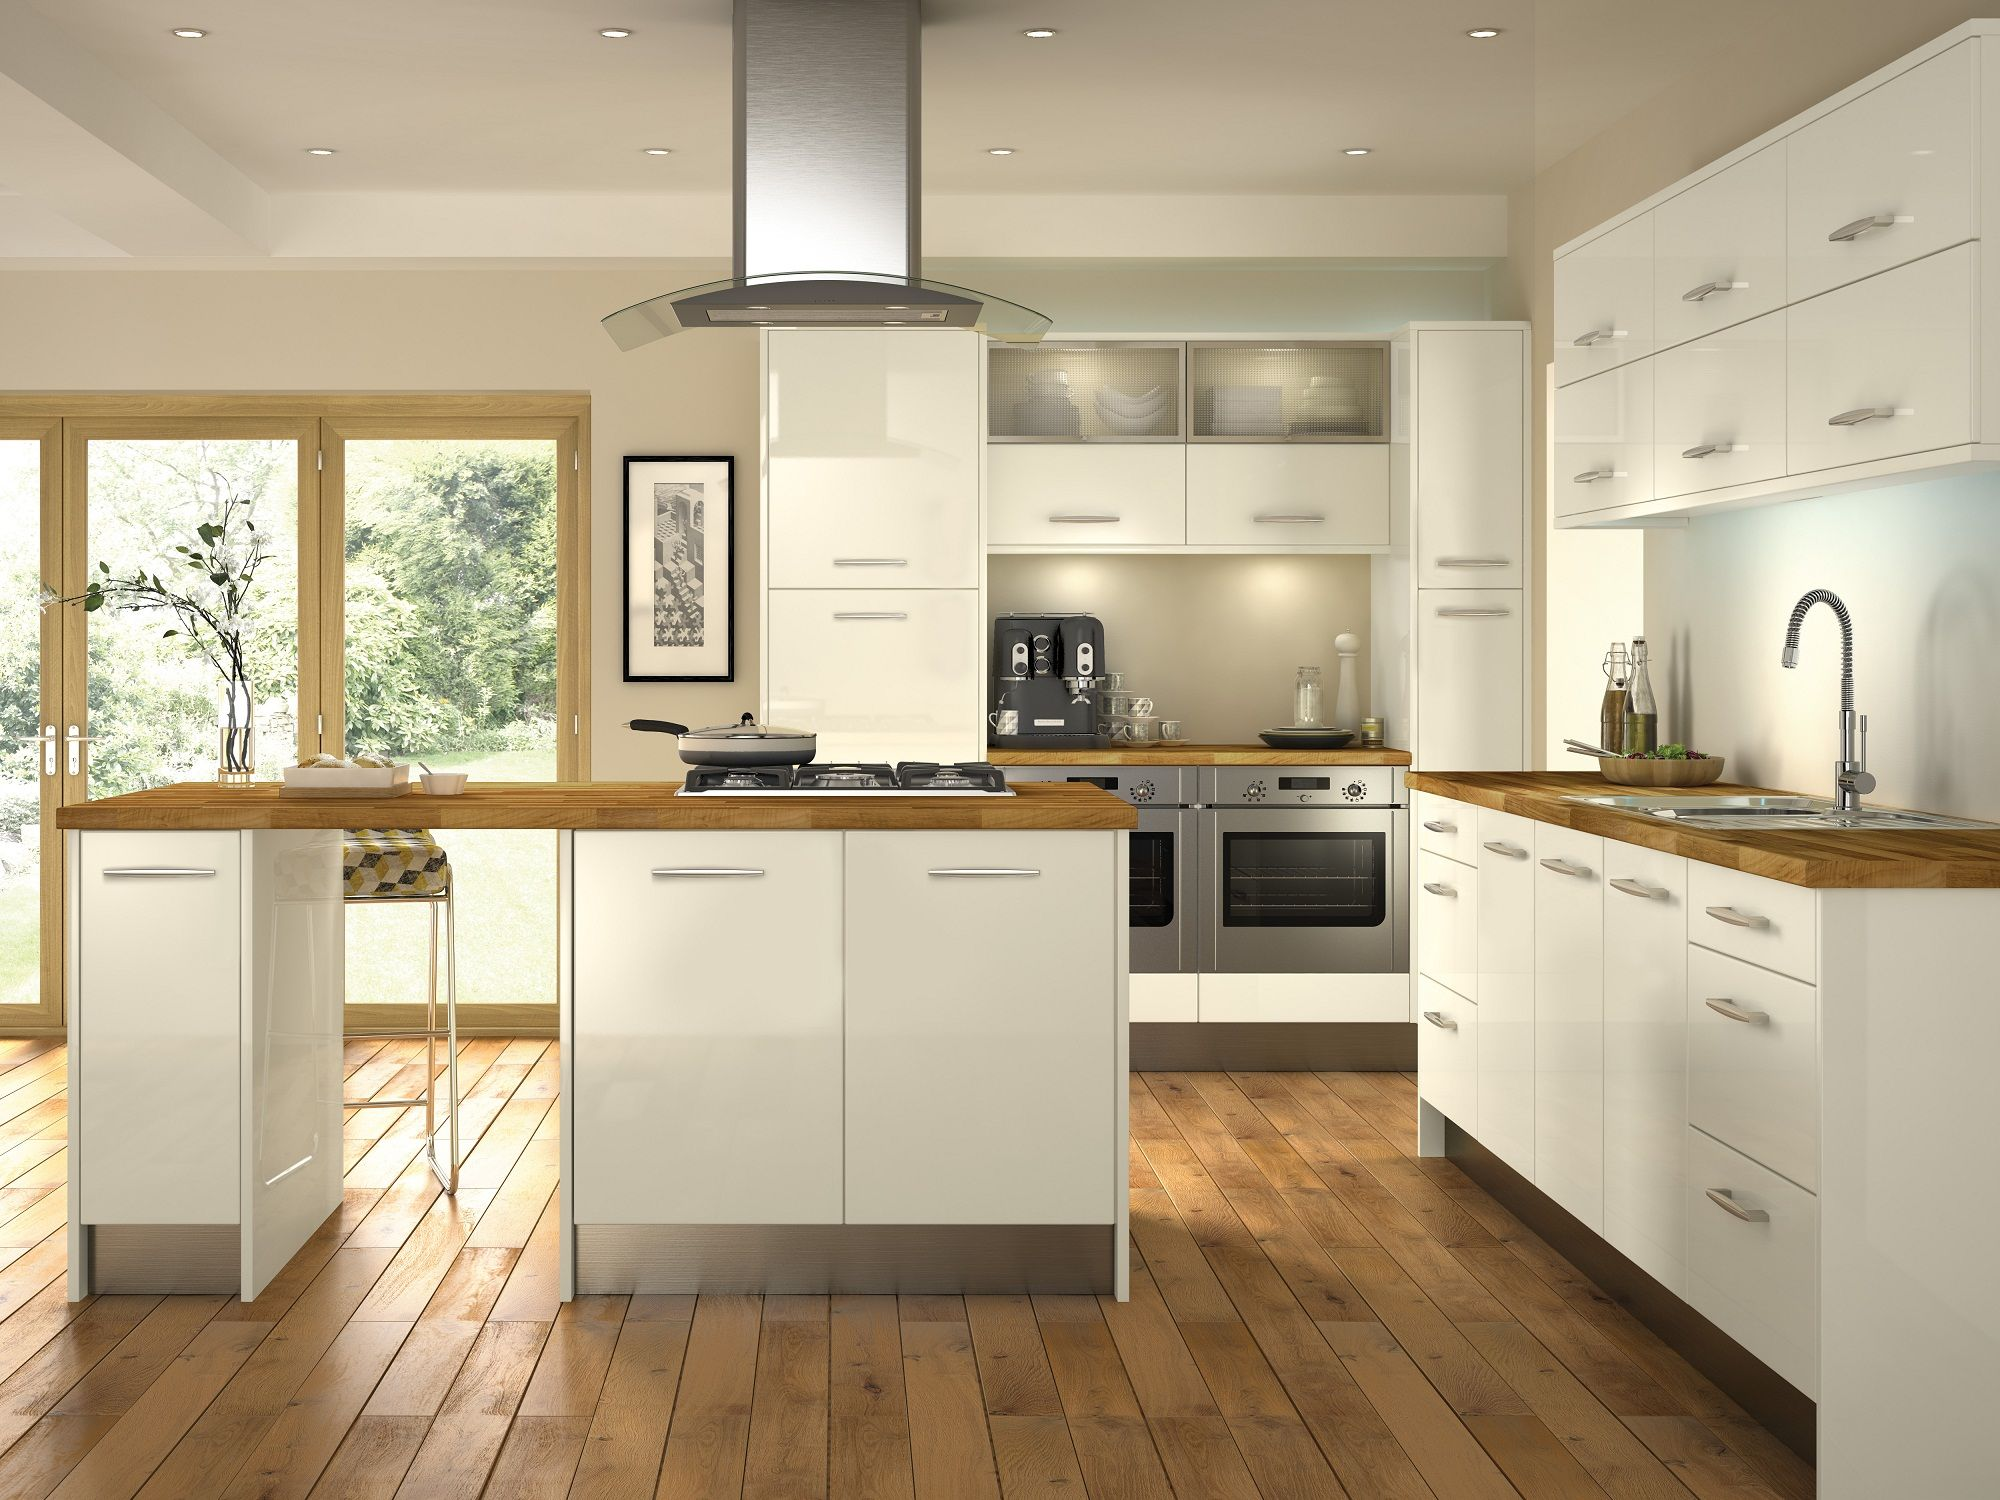 Minoco ivory this gloss kitchen door would make any for Ivory kitchen ideas